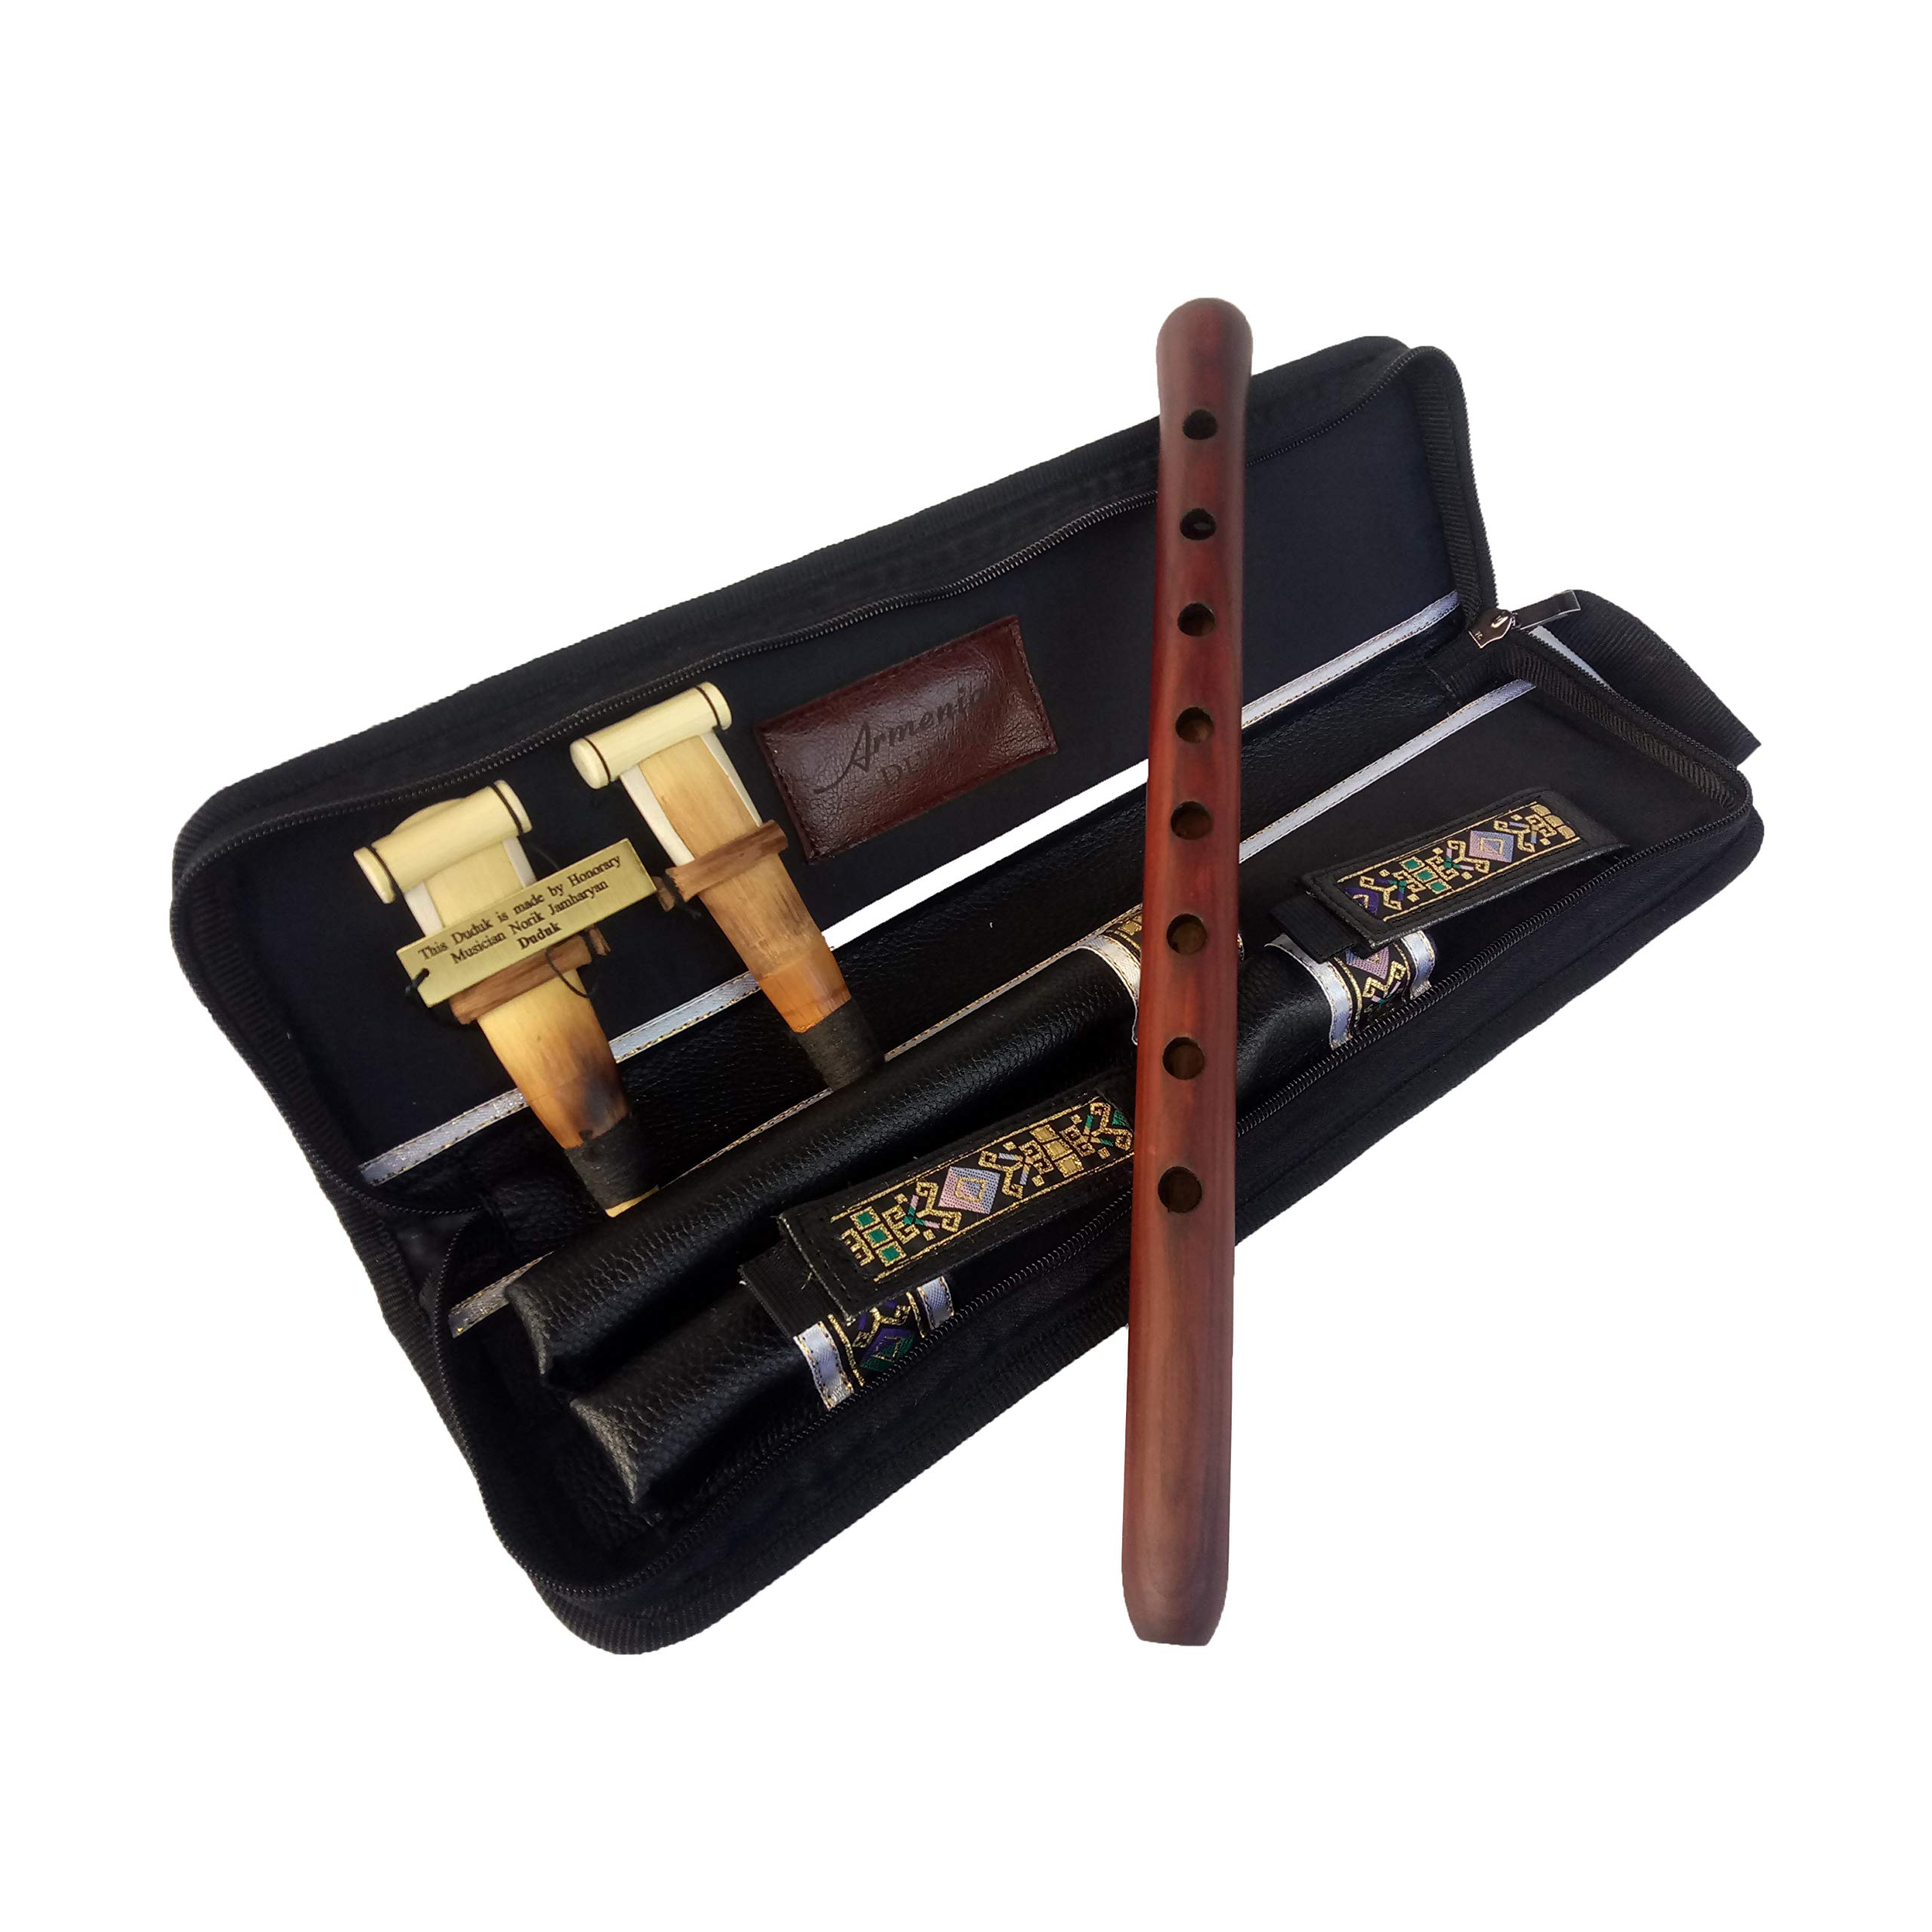 SALE - Professional Armenian DUDUK instrument Handmade From ARMENIA, leather case, 2 Pro reeds, Playing Instruction - Apricot Wood in Key A - Flute Oboe Balaban Woodwind